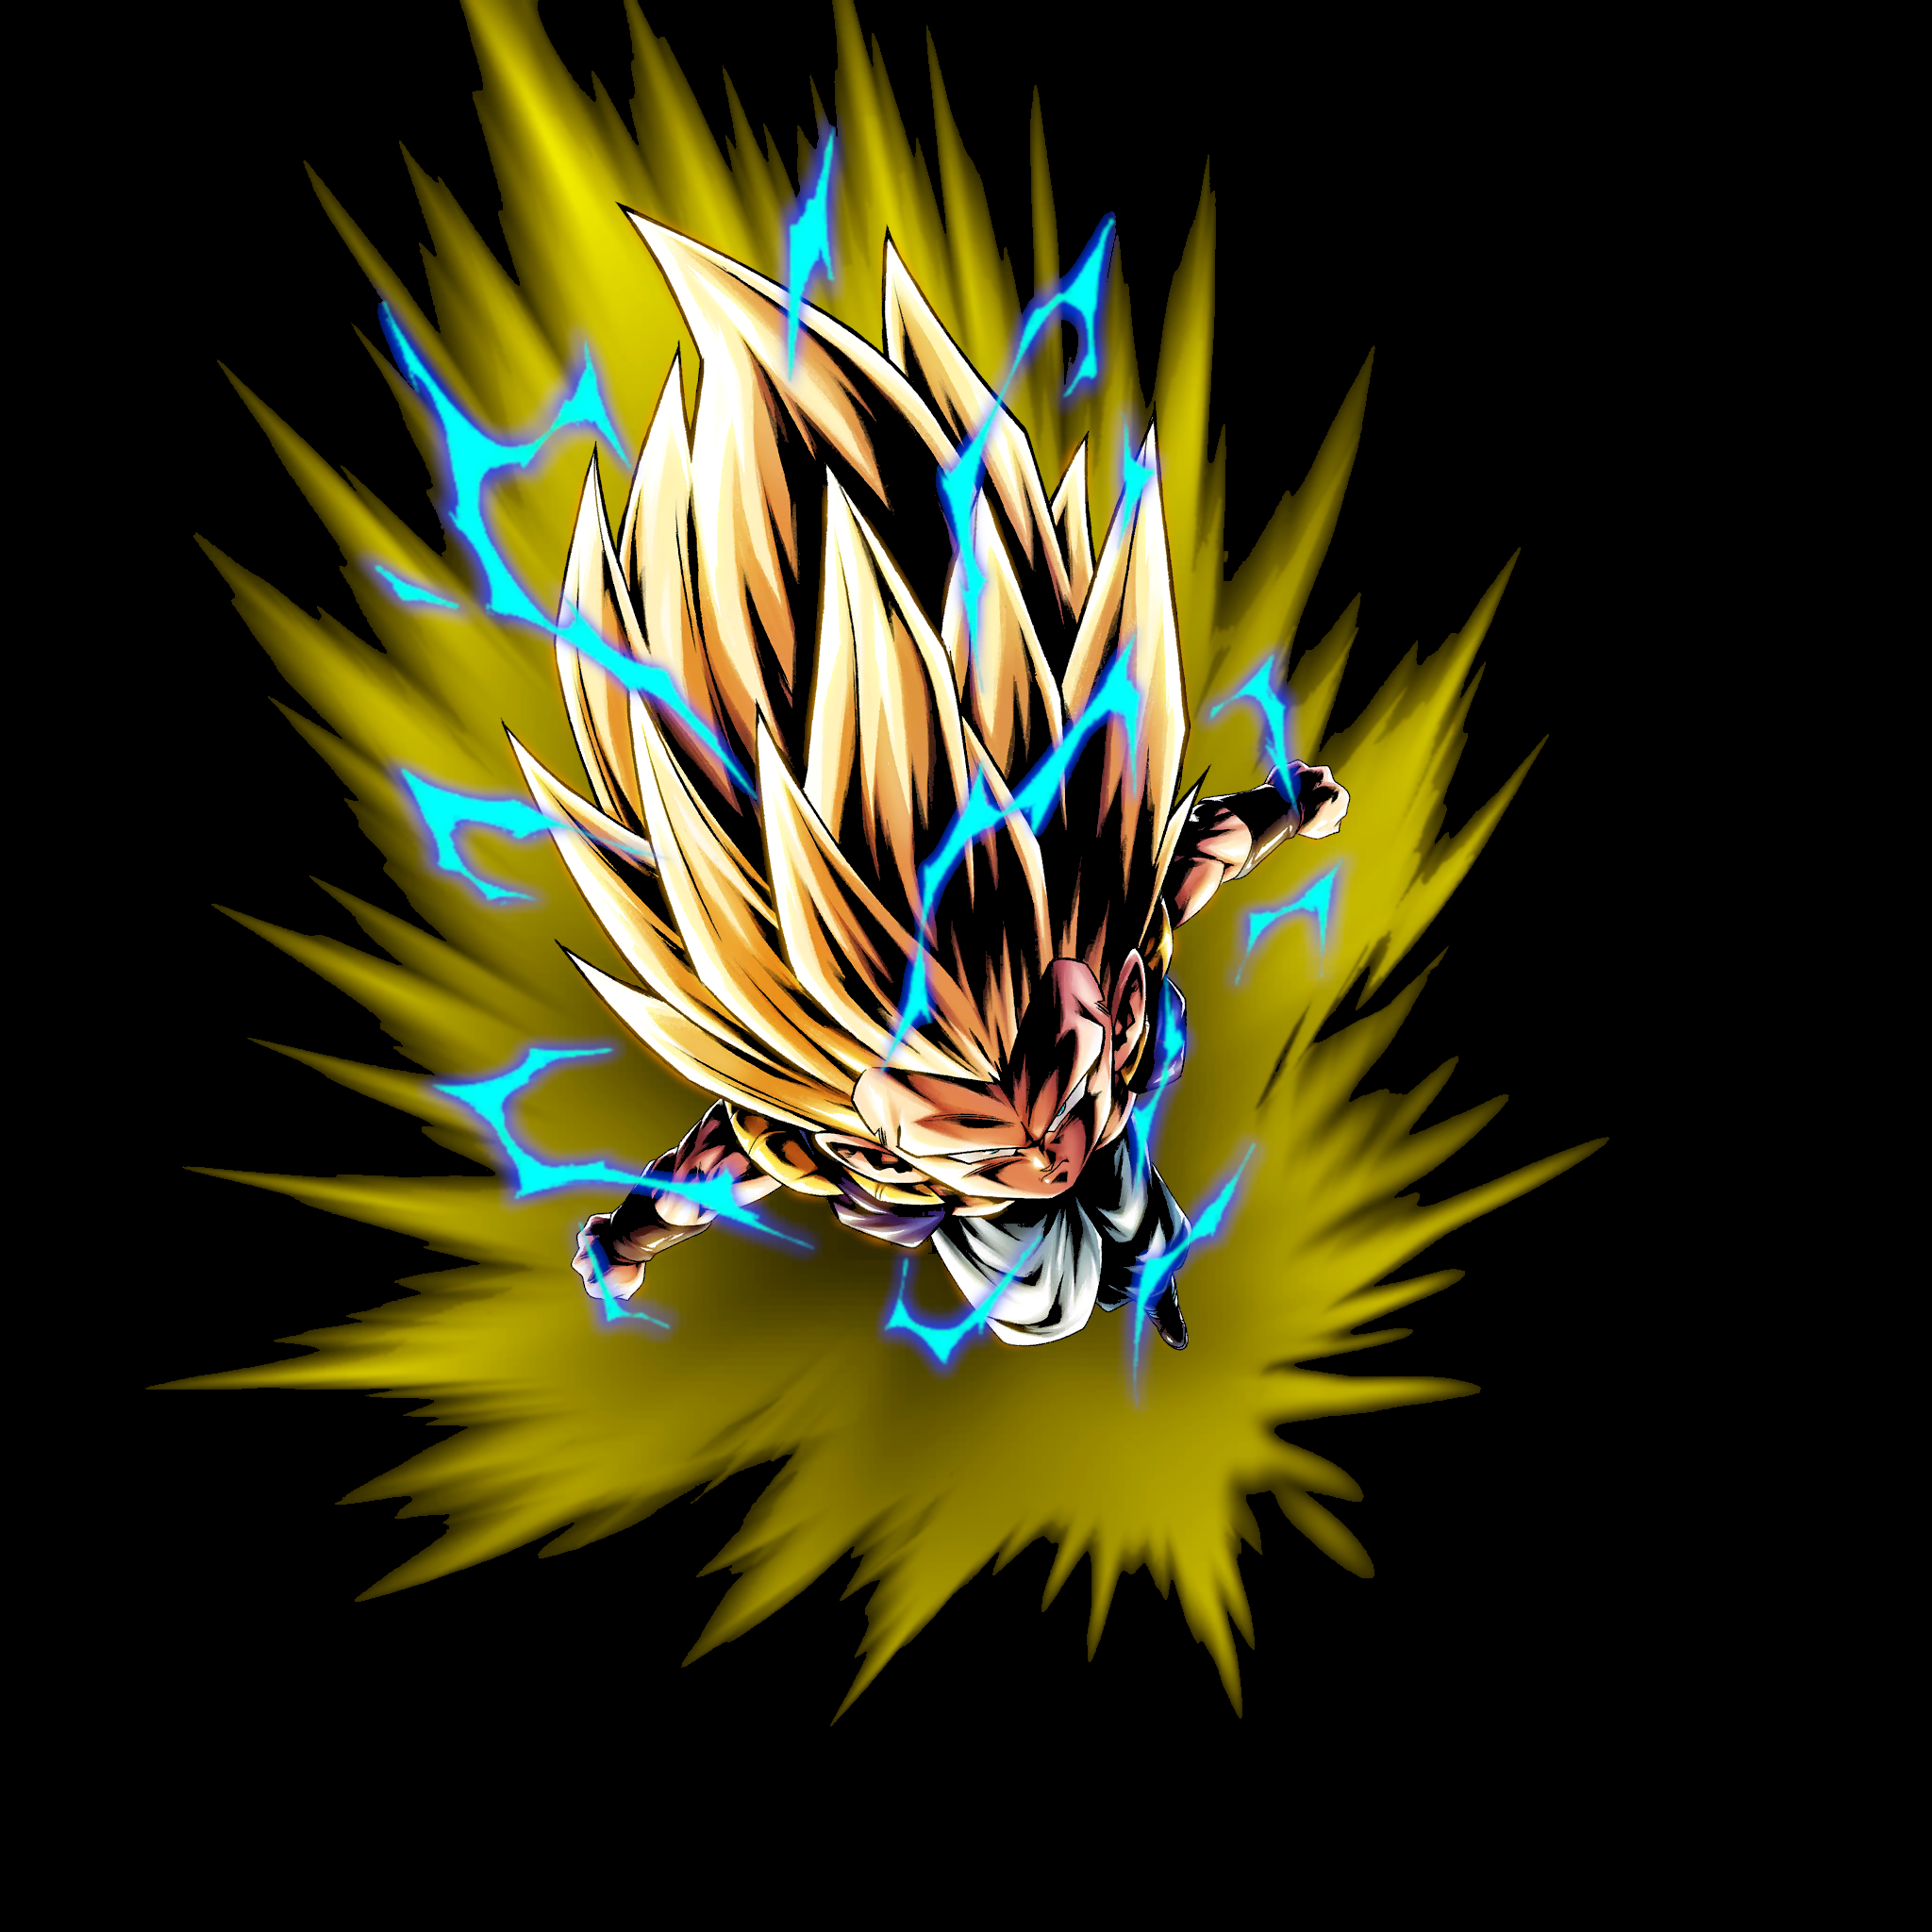 Goku Super Saiyan 3 Wallpapers Top Free Goku Super Saiyan 3